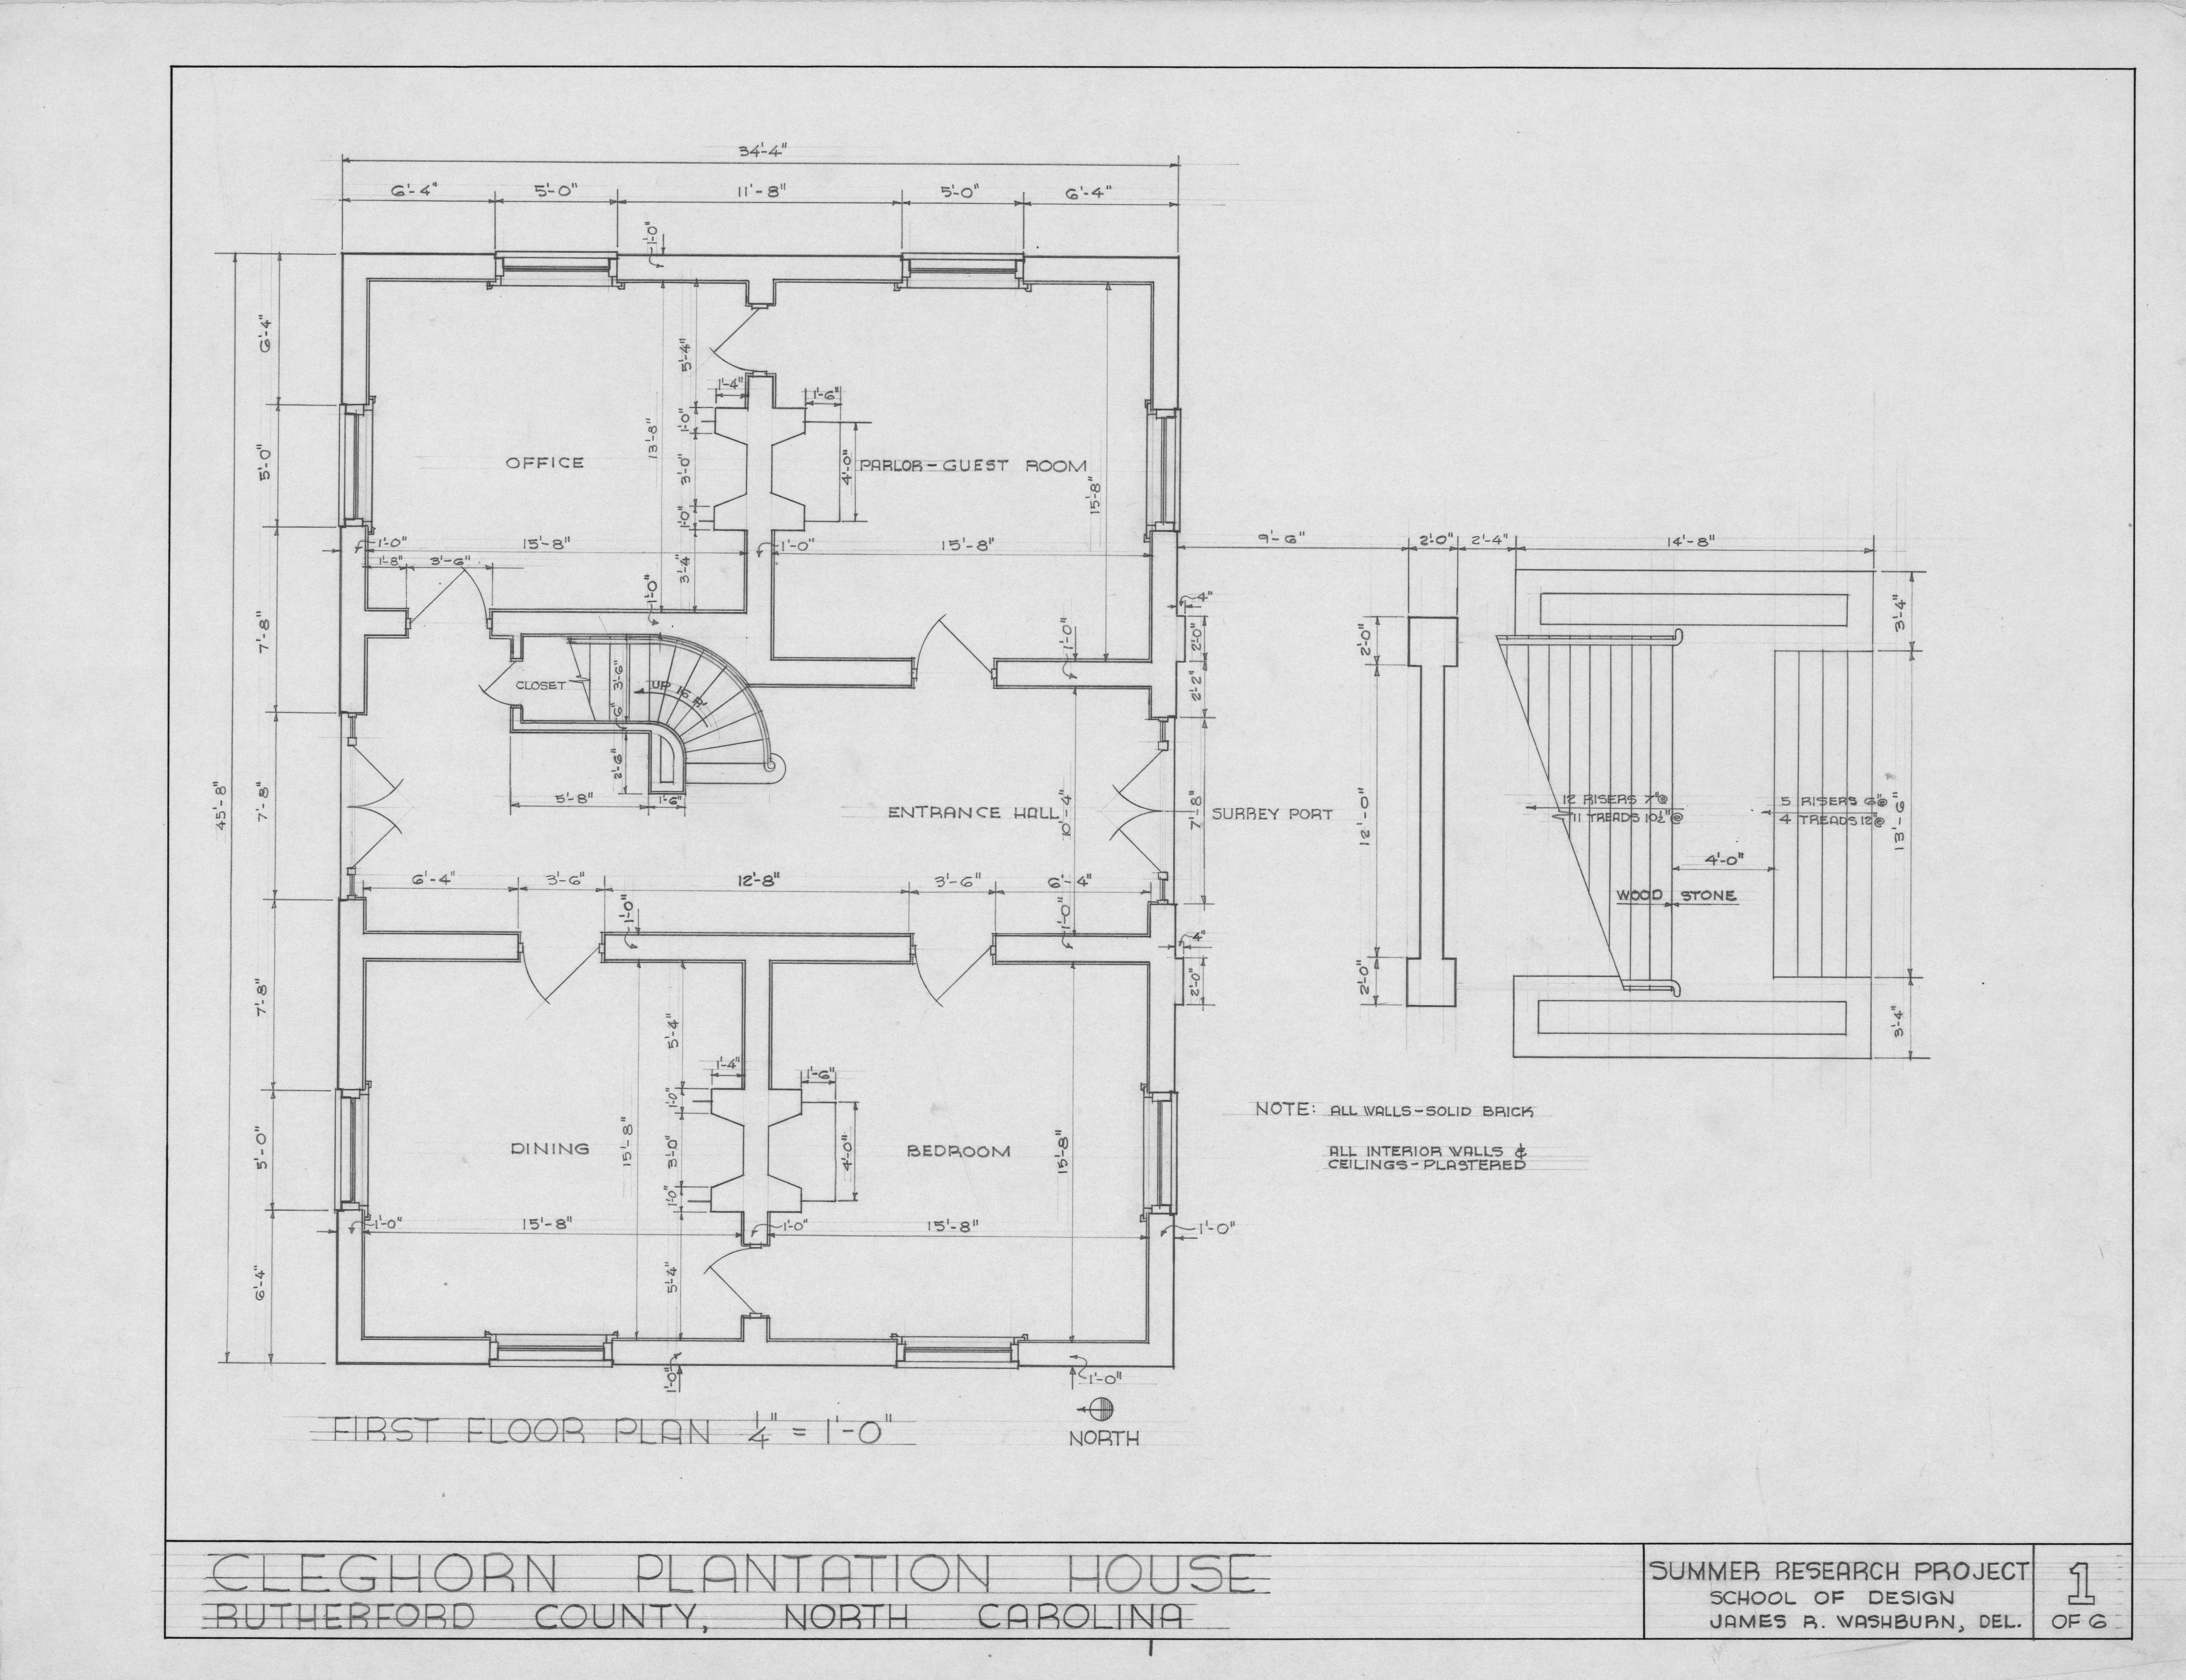 First floor plan cleghorn rutherford county north for Rutherford house plan